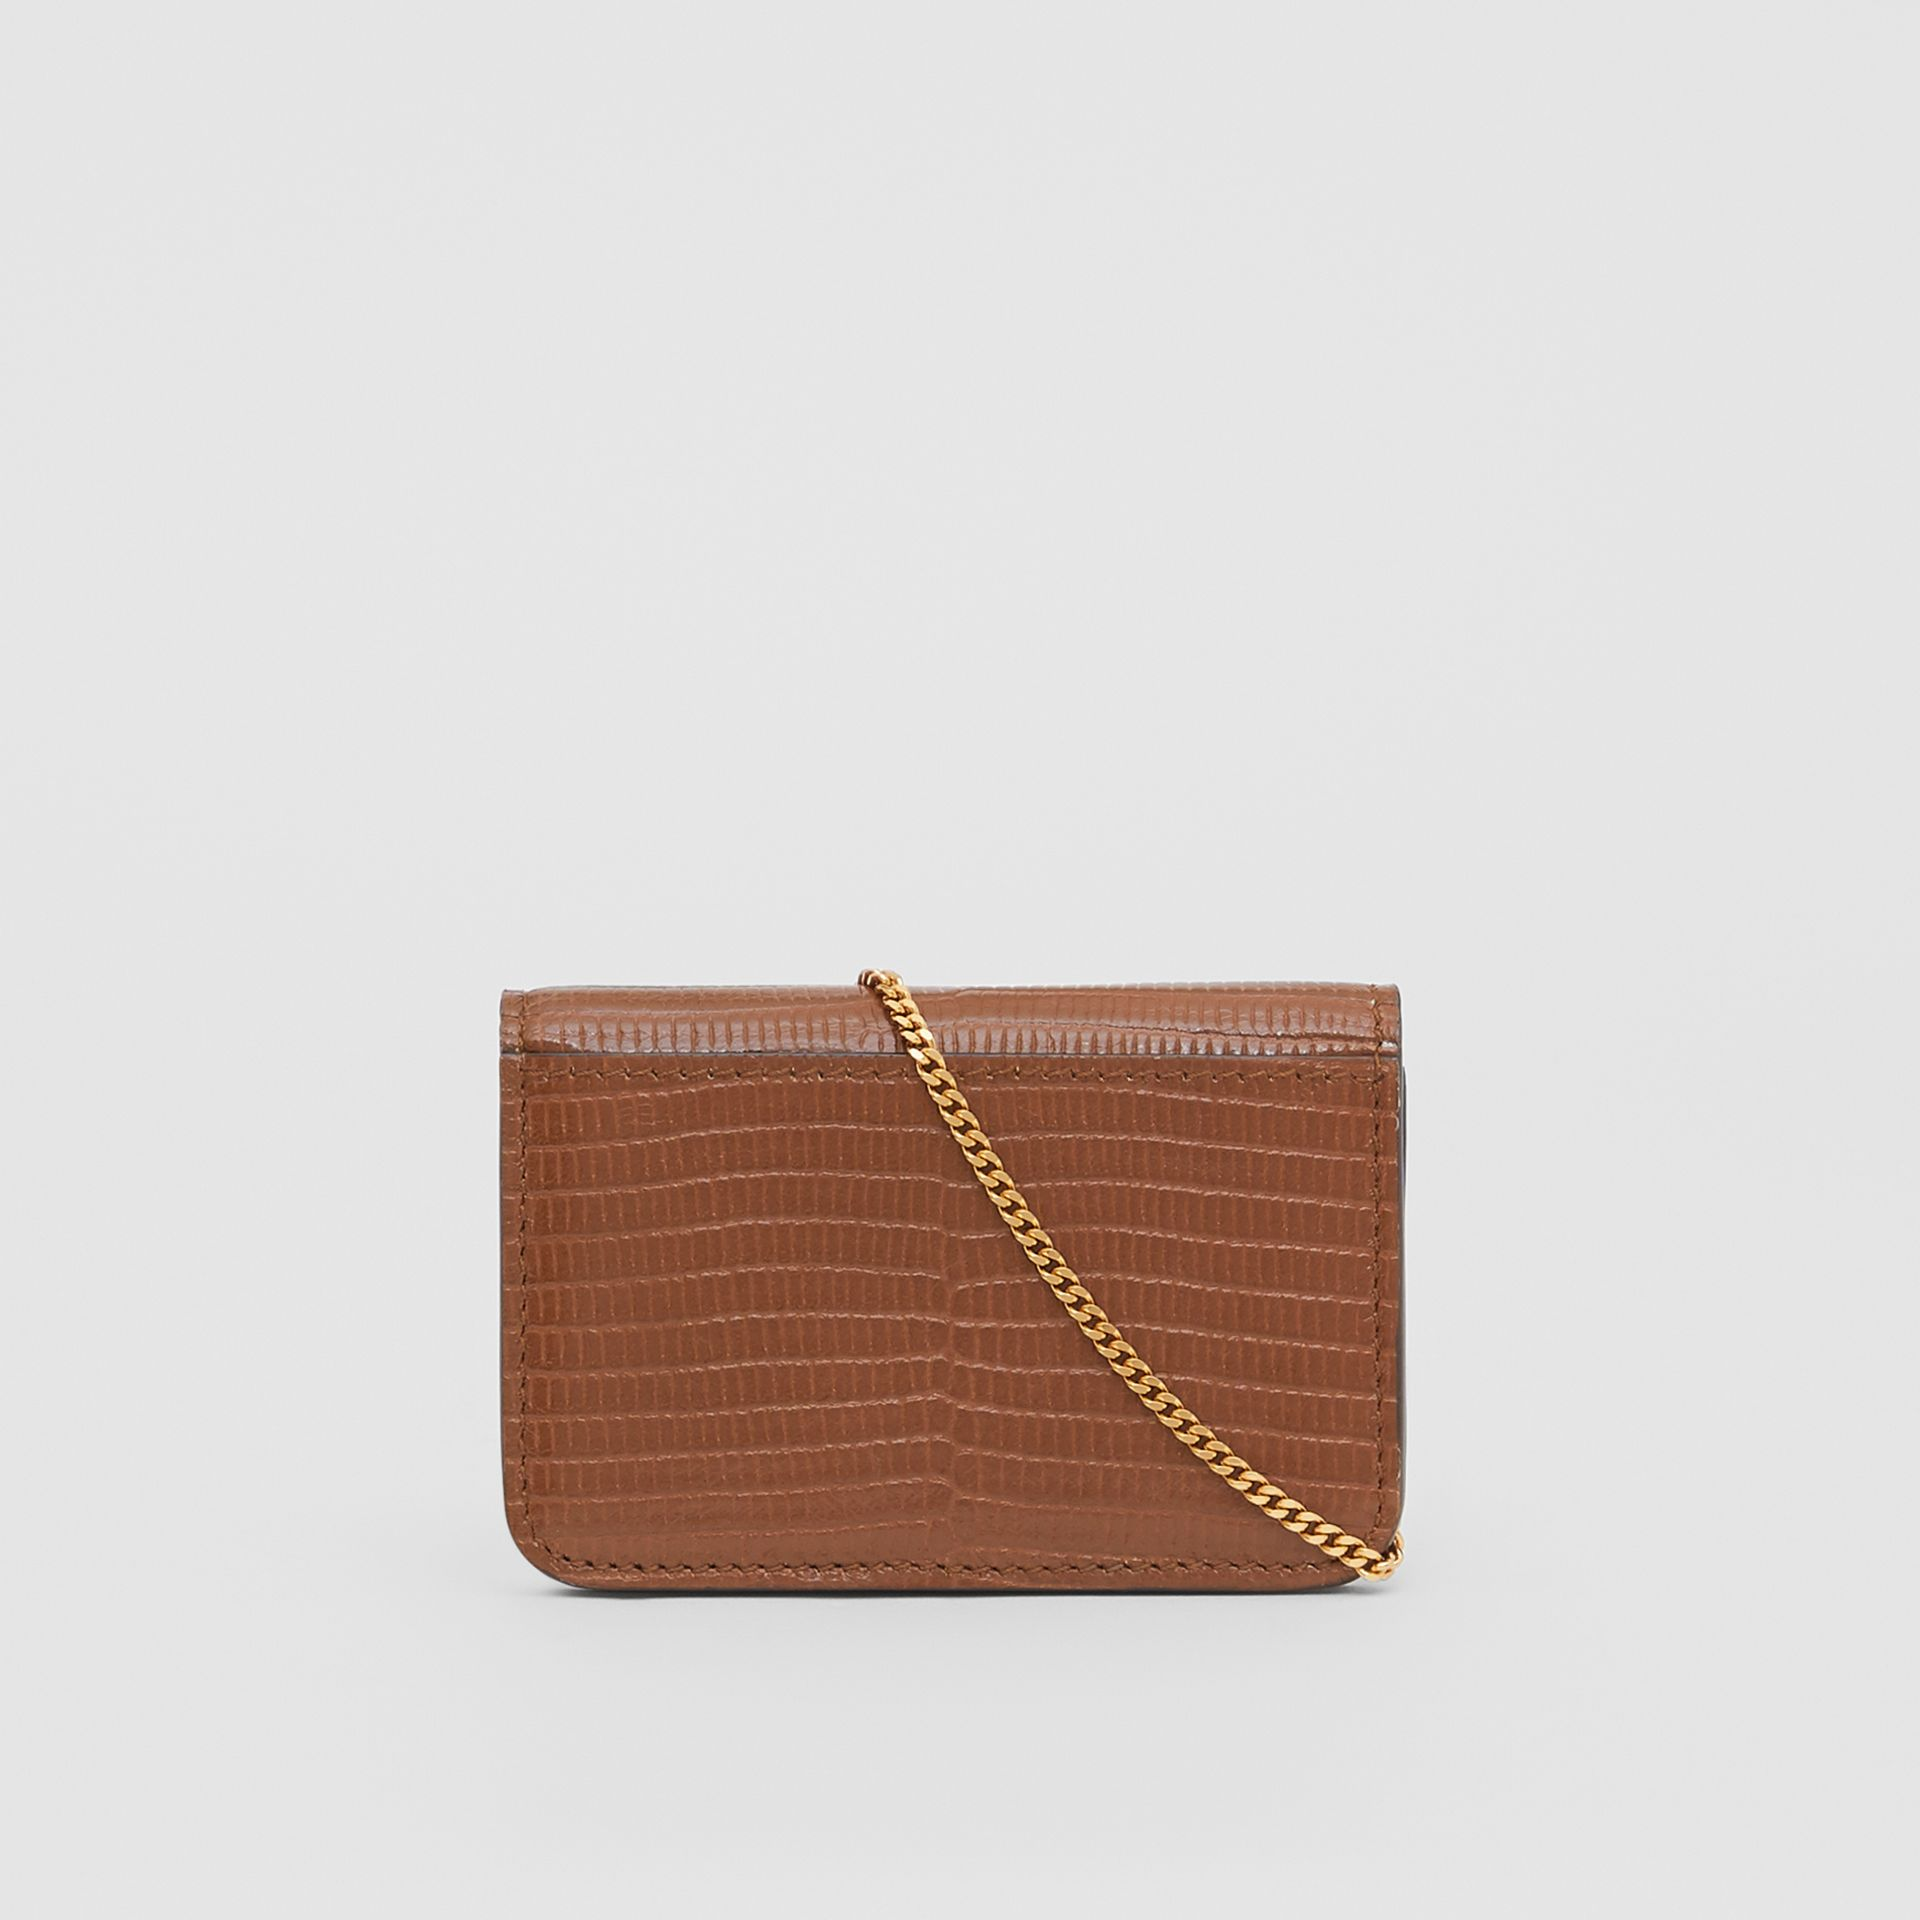 Embossed Deerskin Card Case with Chain Strap in Tan - Women | Burberry - gallery image 8